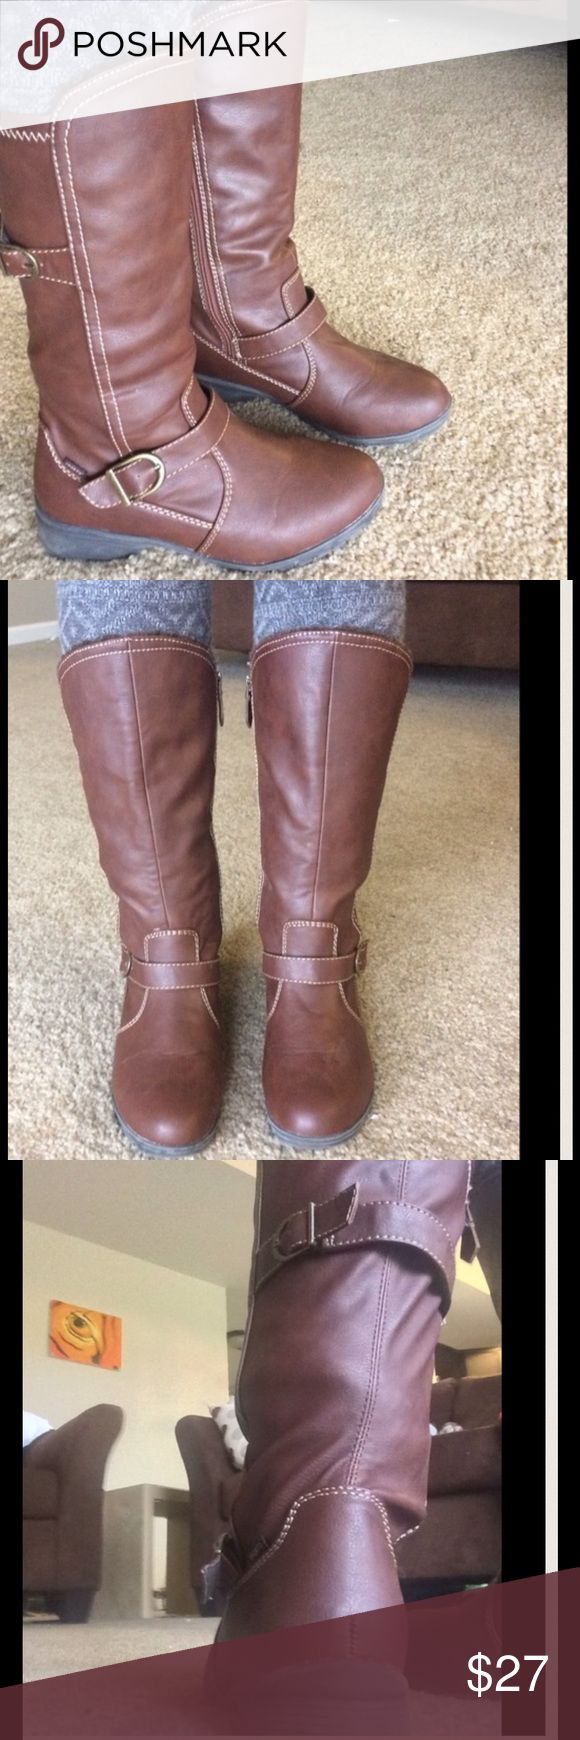 Brown sporto boots Sporto boots with rubber soles, no obvious damage. Brown with riding style buckles, perfect for winter! Faux fur lining on the front inside Sporto Shoes Winter & Rain Boots